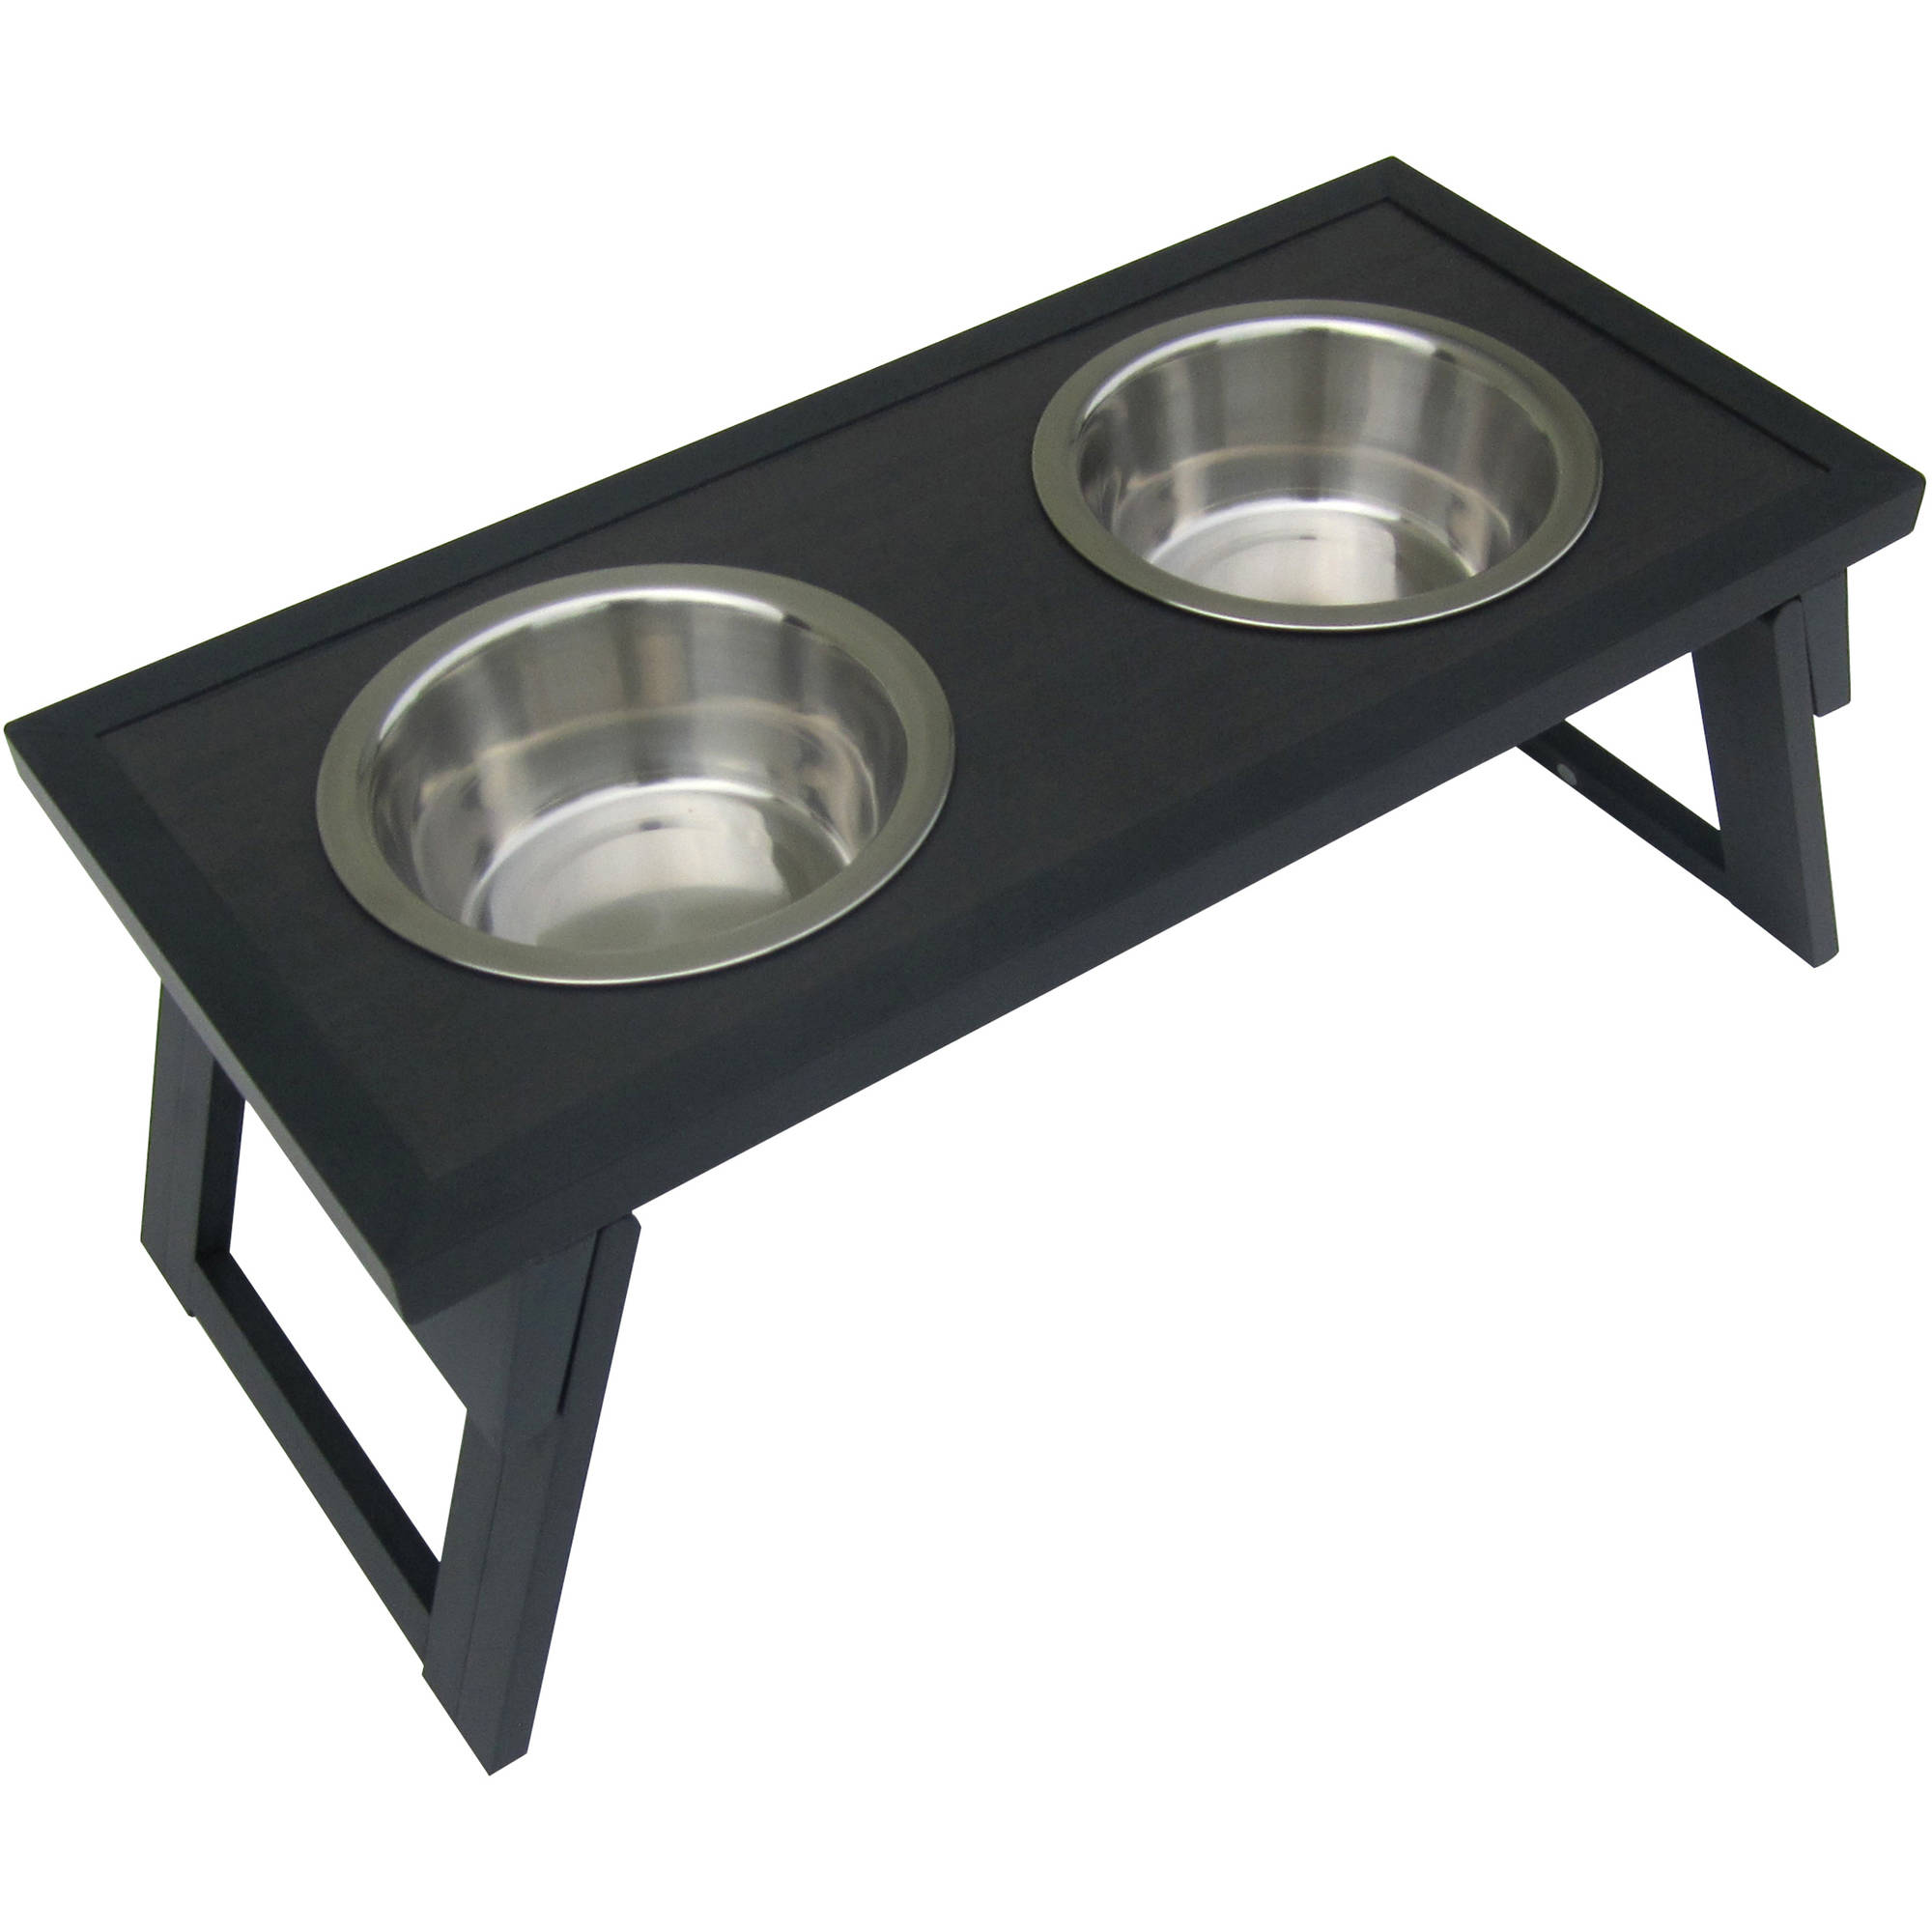 New Age Pet Habitat 'n Home HiLo Diner Raised Dog Bowl, Medium, Espresso